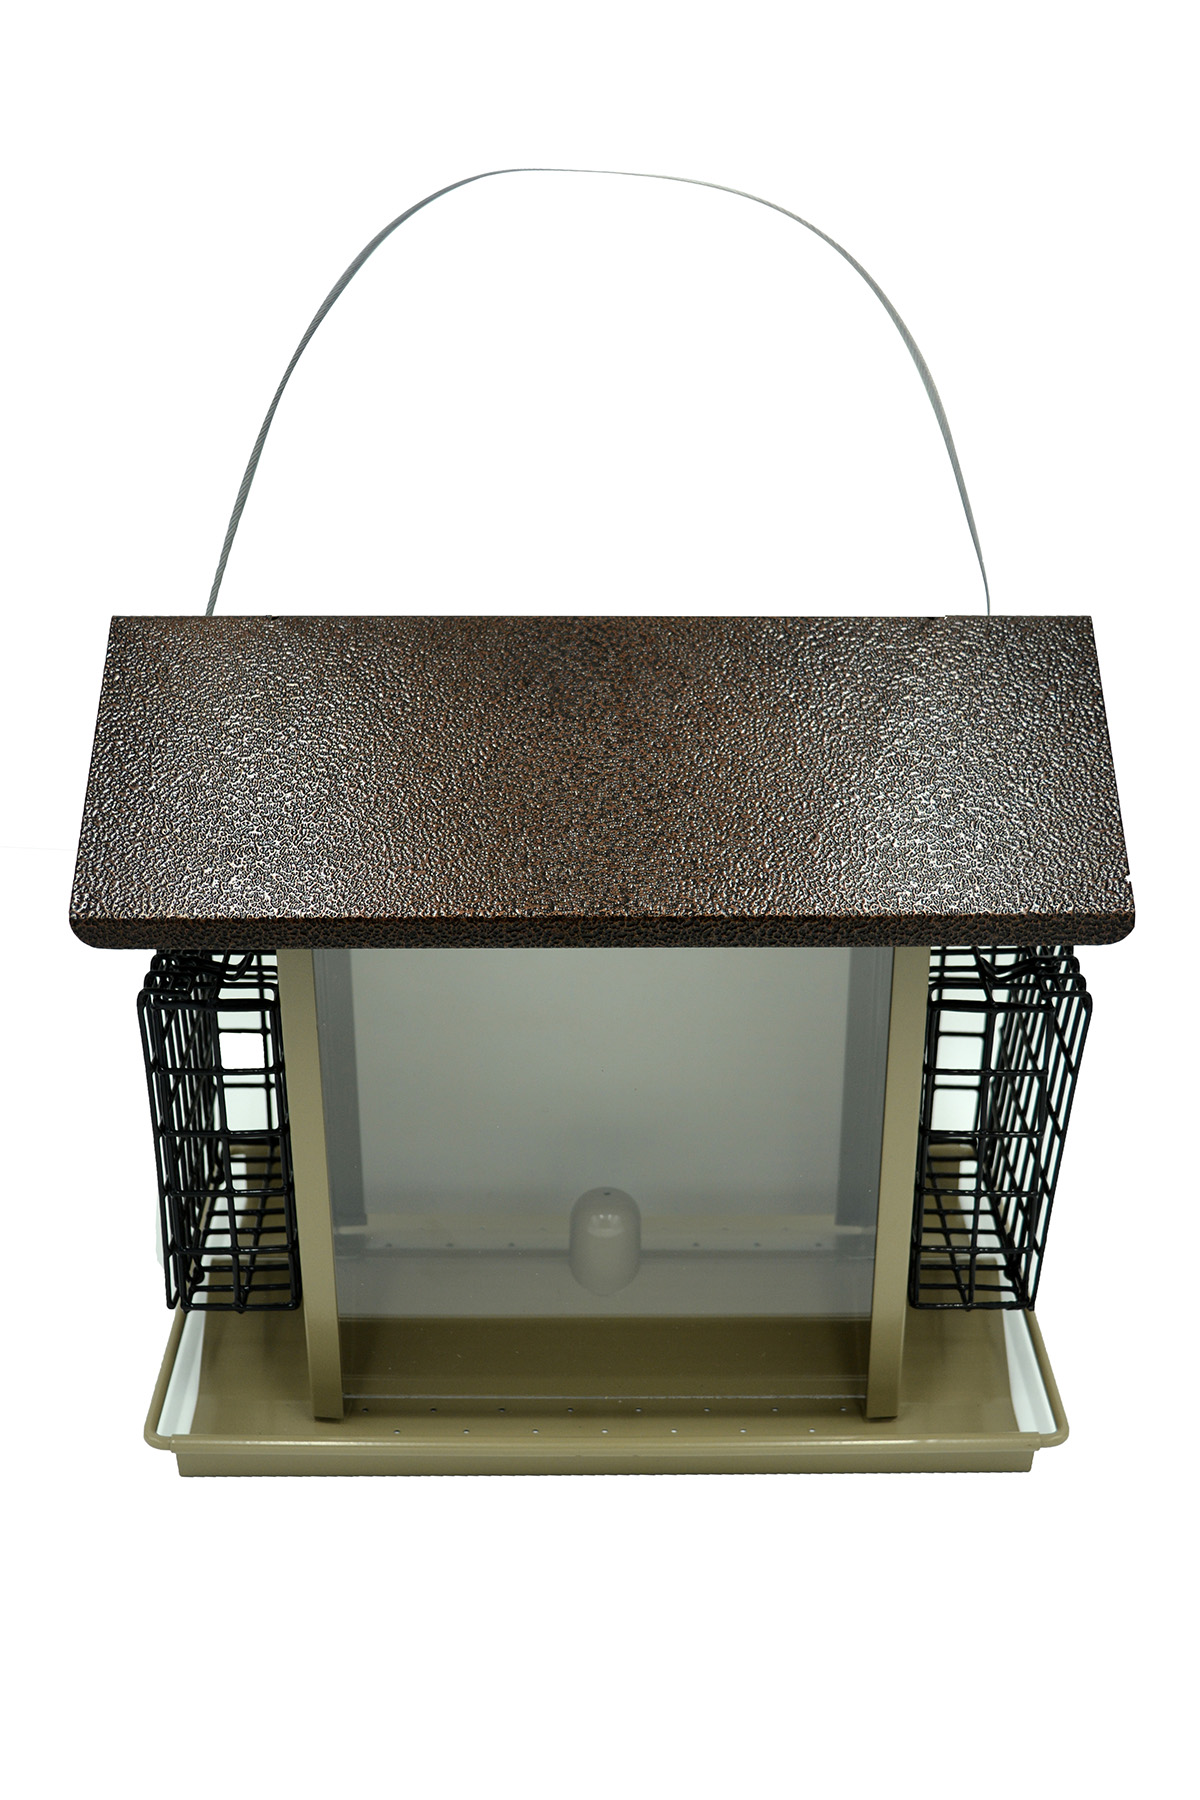 Large Bird Hopper Feeder Z38073 6.3 qt Capacity, 9.41 x 13-1/2 x 8.27 inches, Hammered Copper